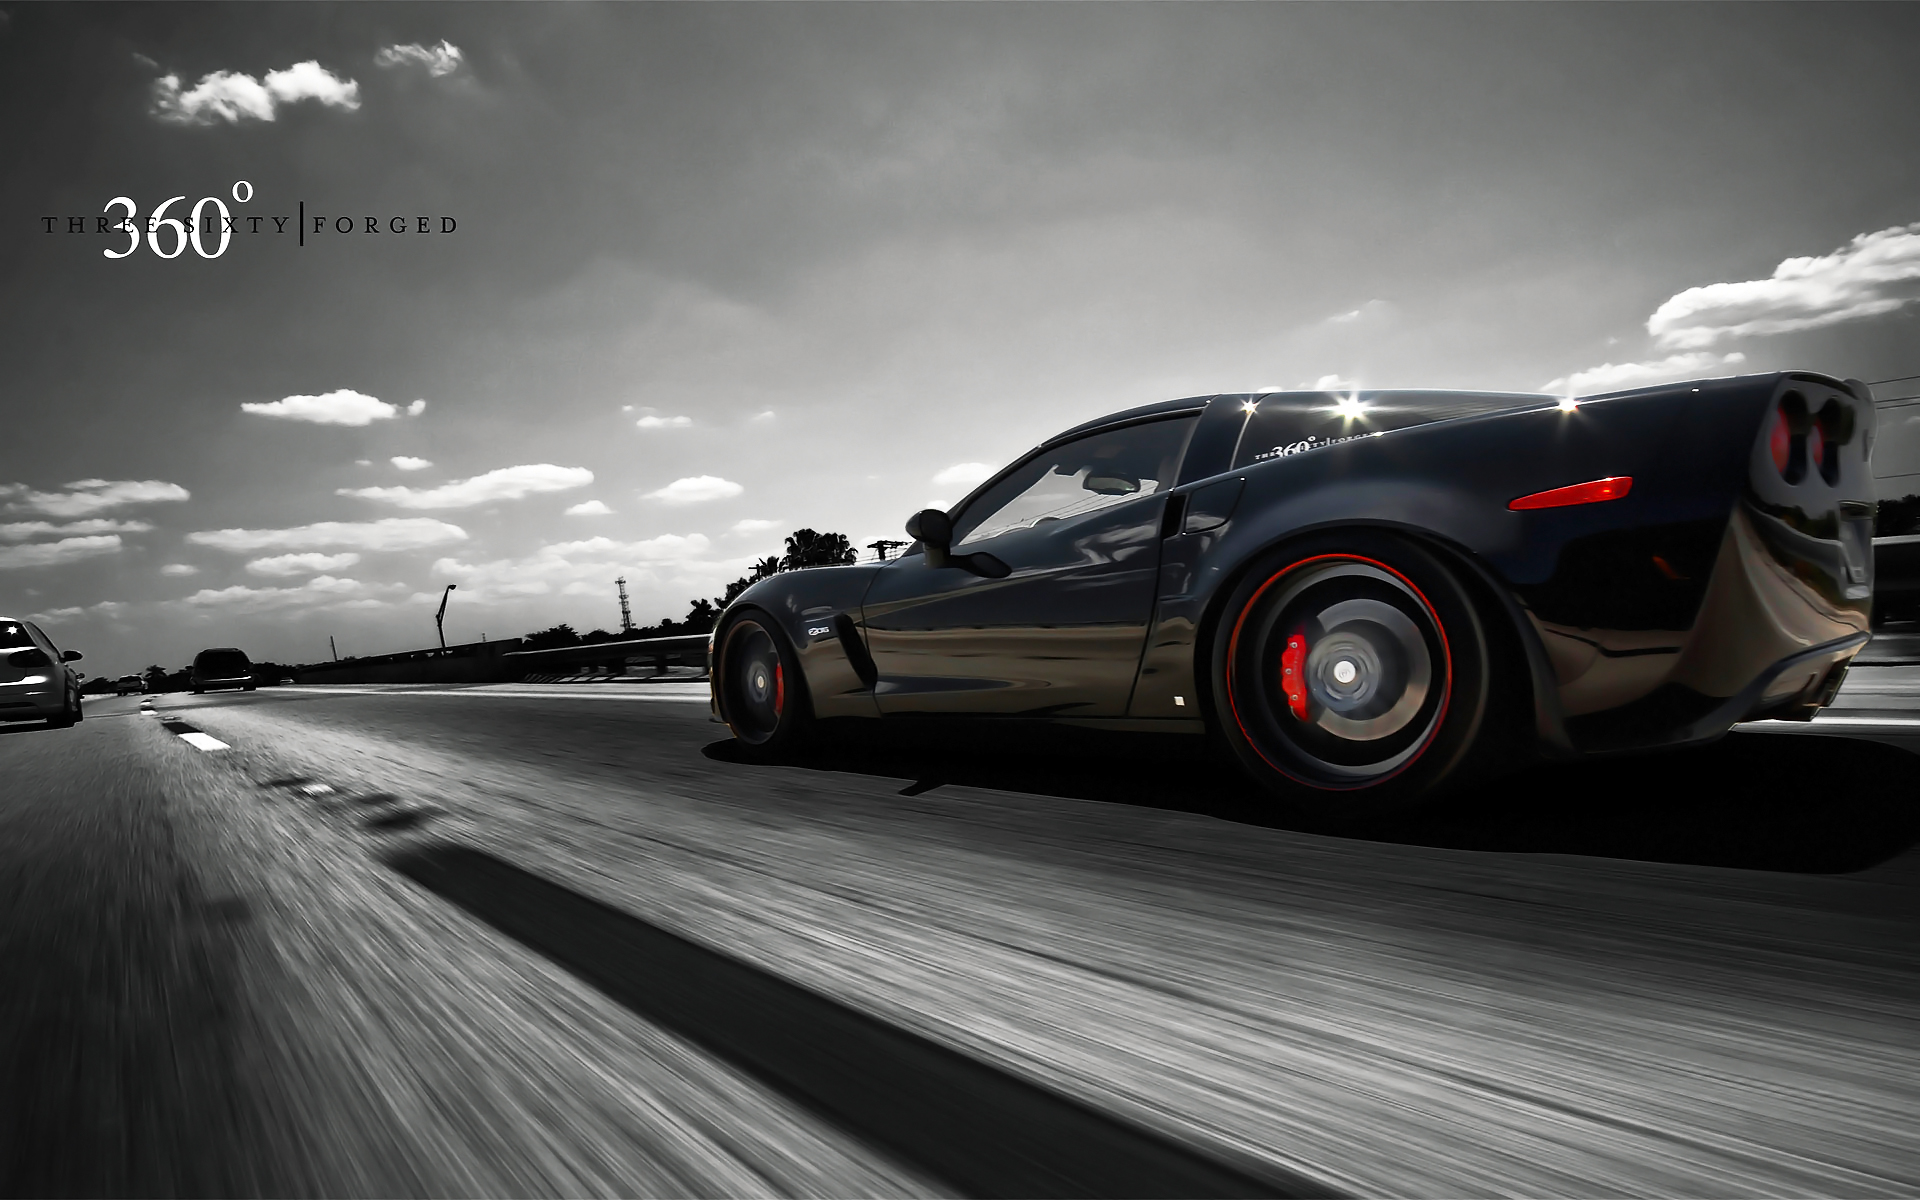 Corvette HD Wallpaper